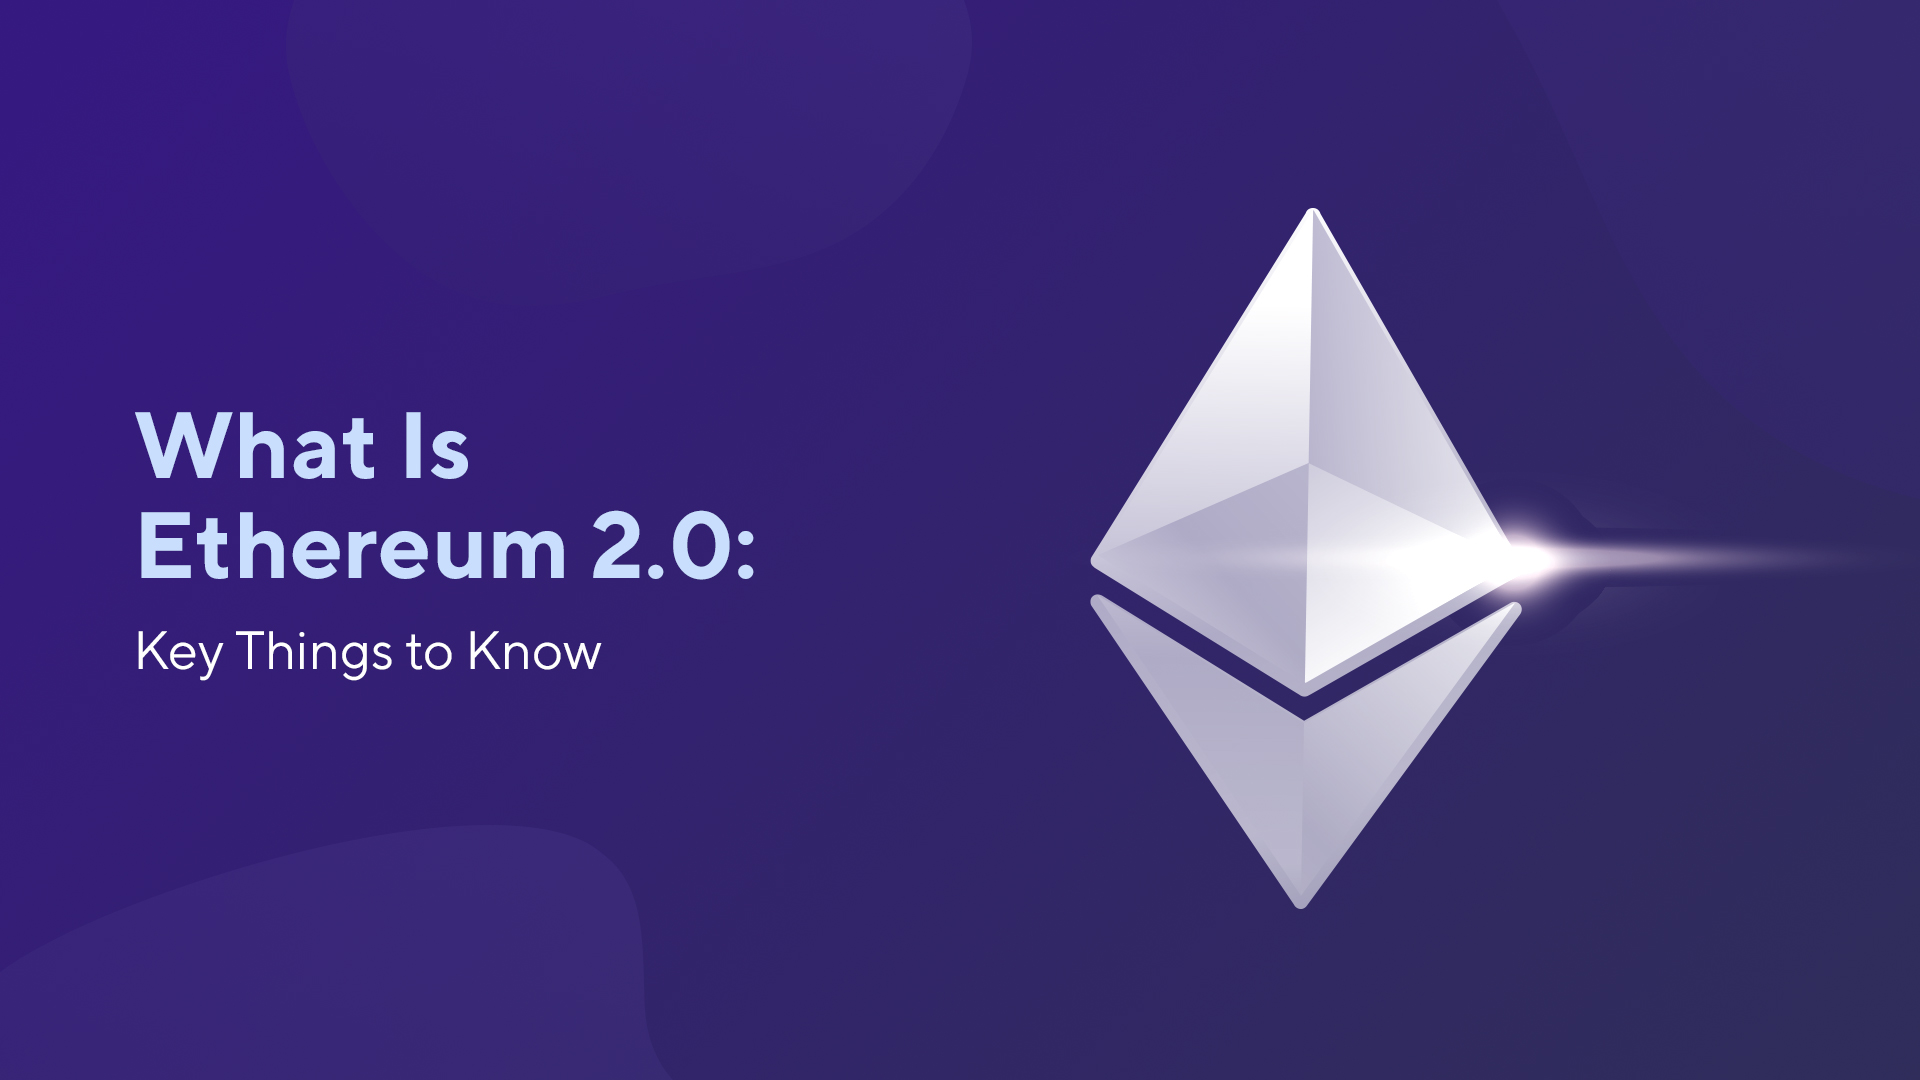 What Is Ethereum 2.0: Key Things to Know